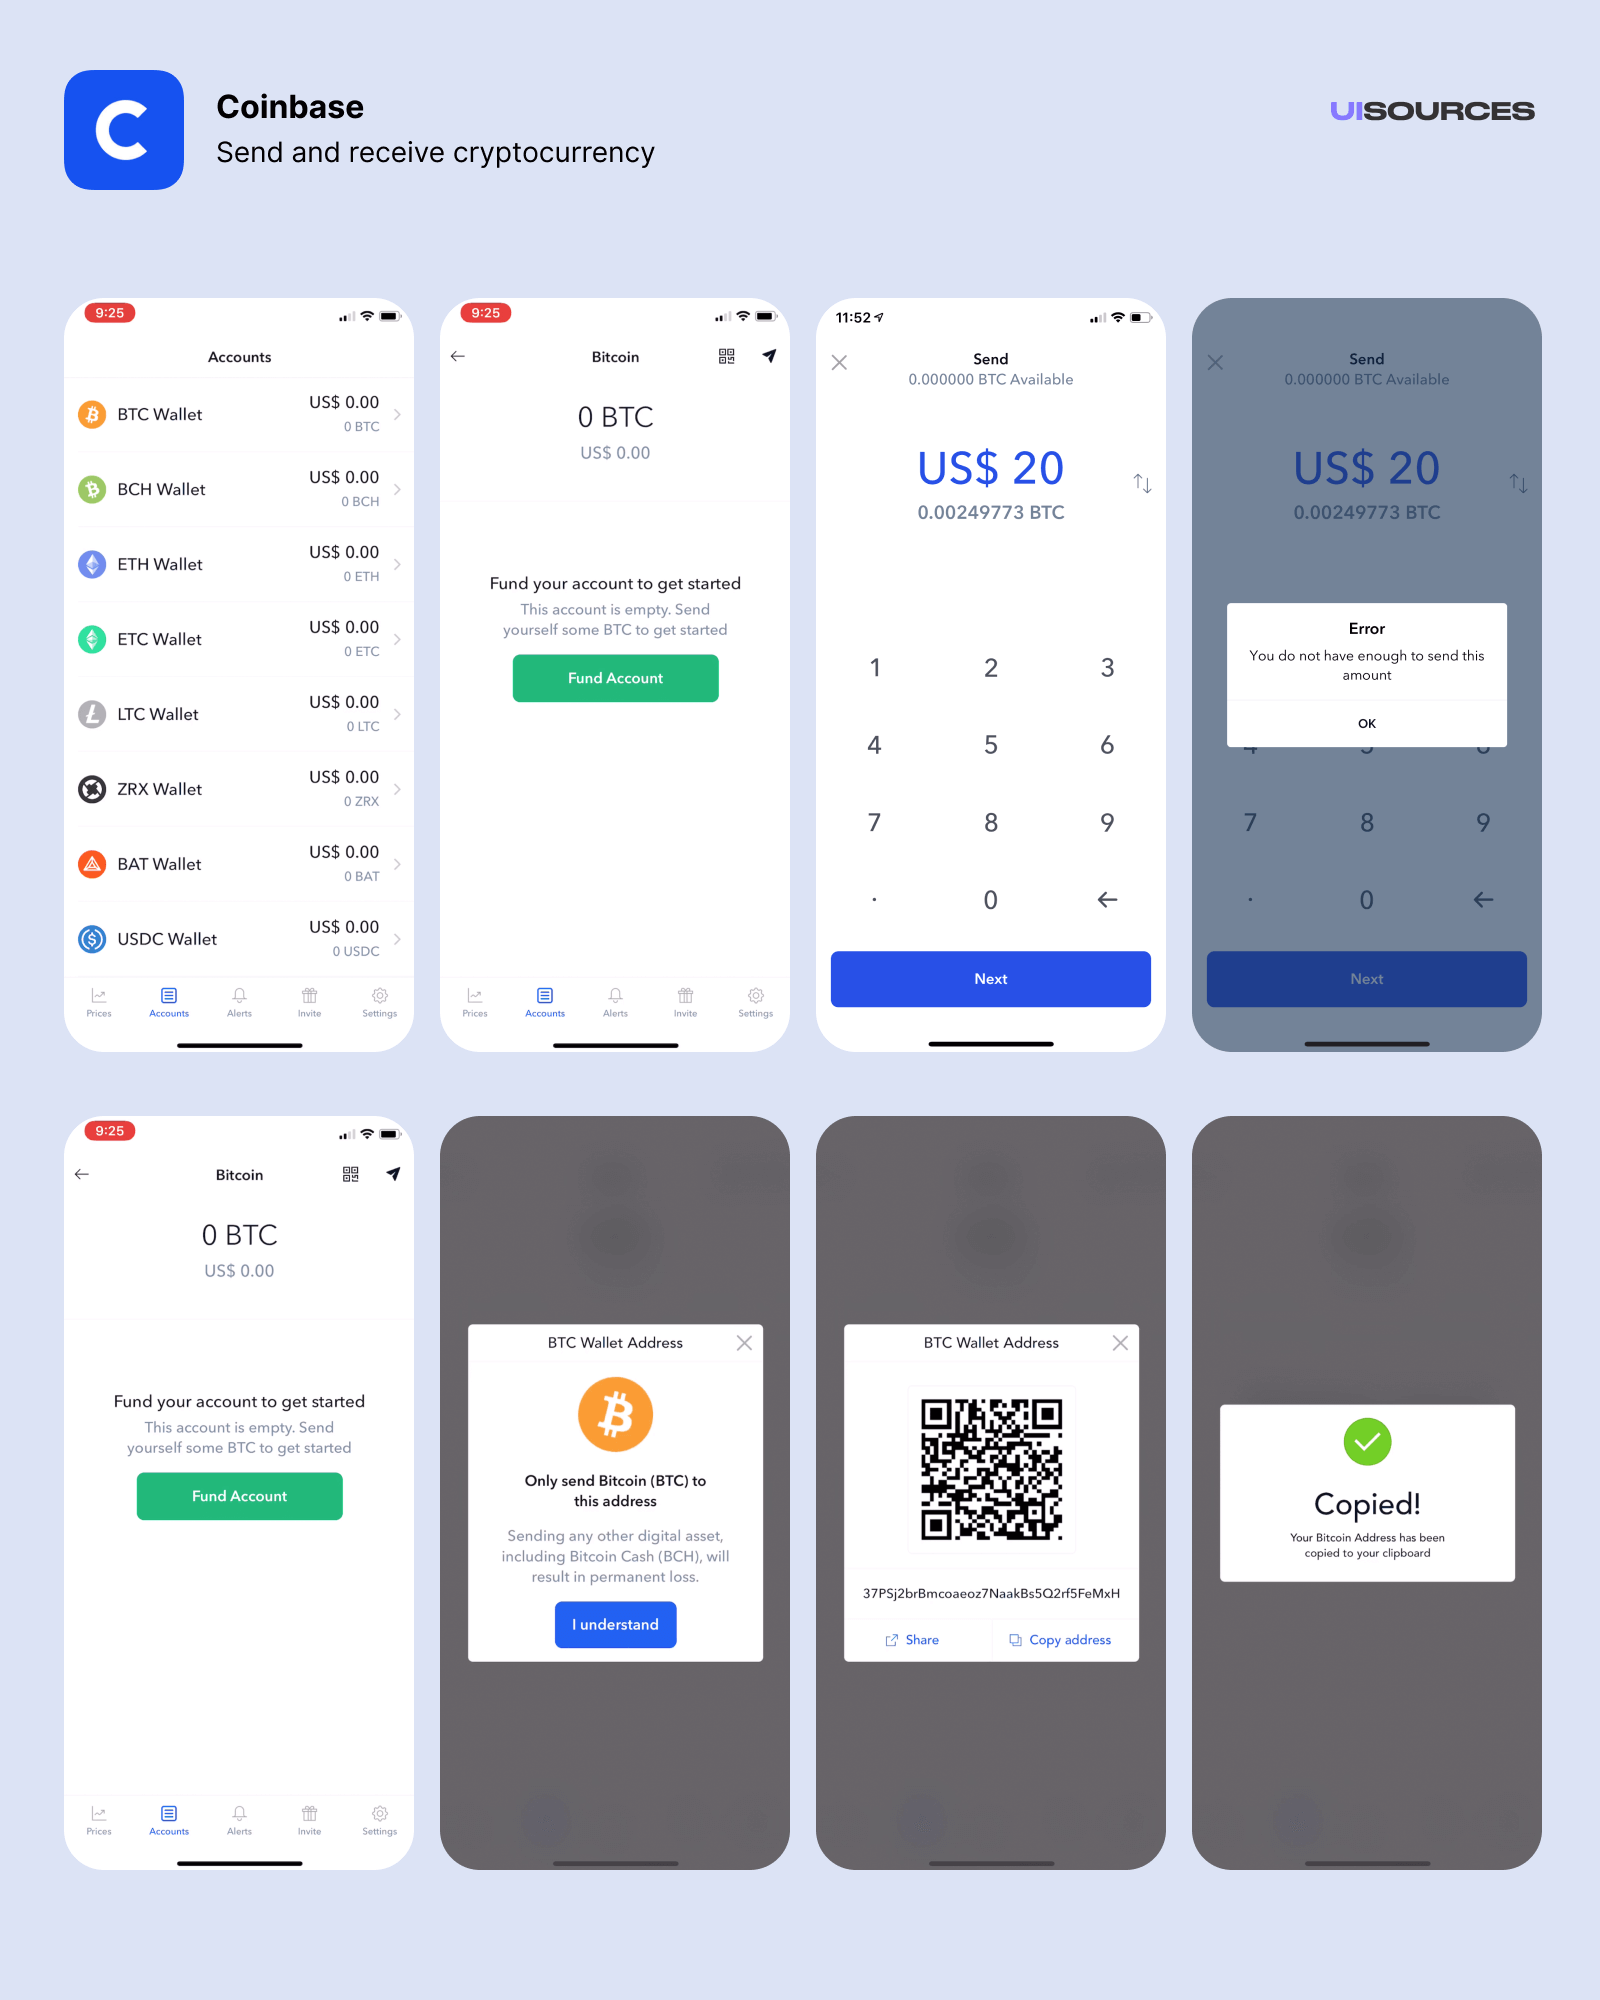 Send and receive cryptocurrency